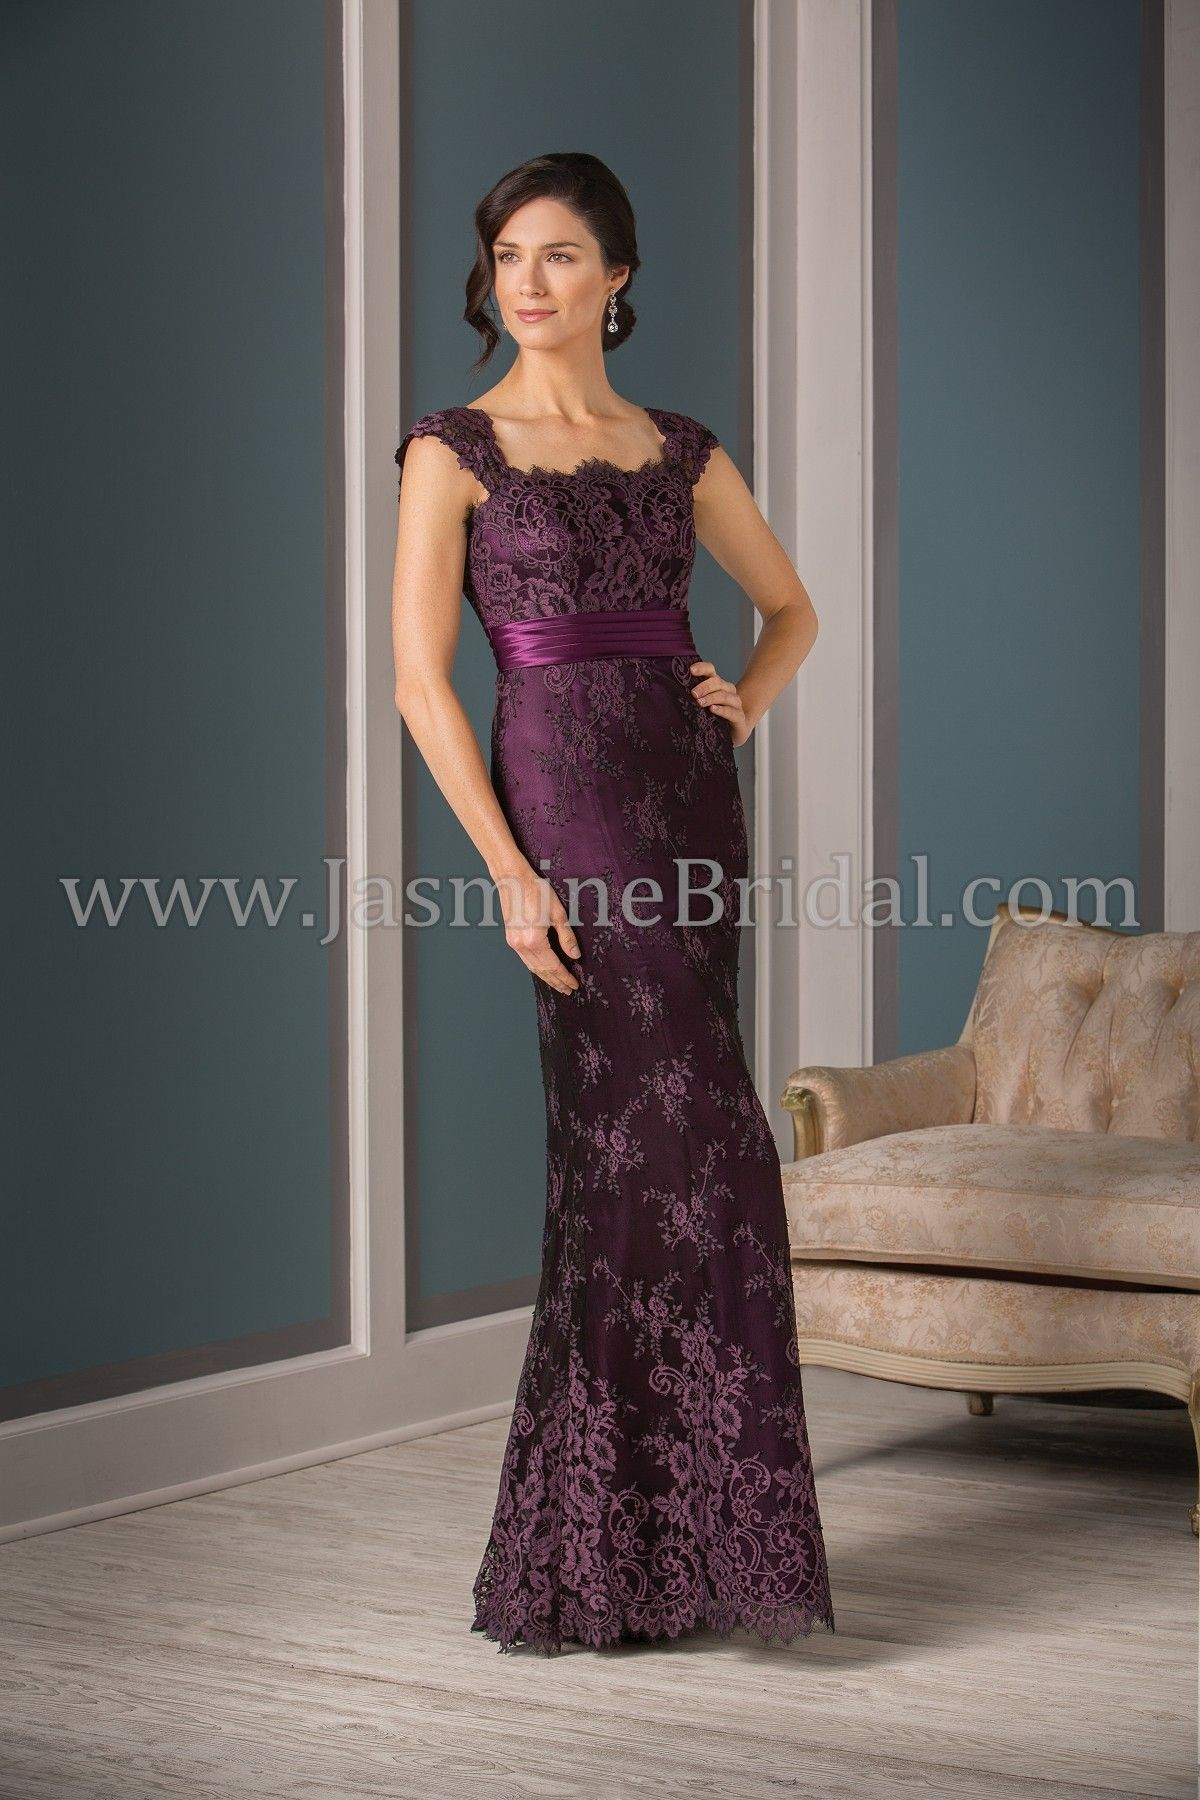 Jasmine Bridal Jade Couture Style K188003 In Bordeaux Purple